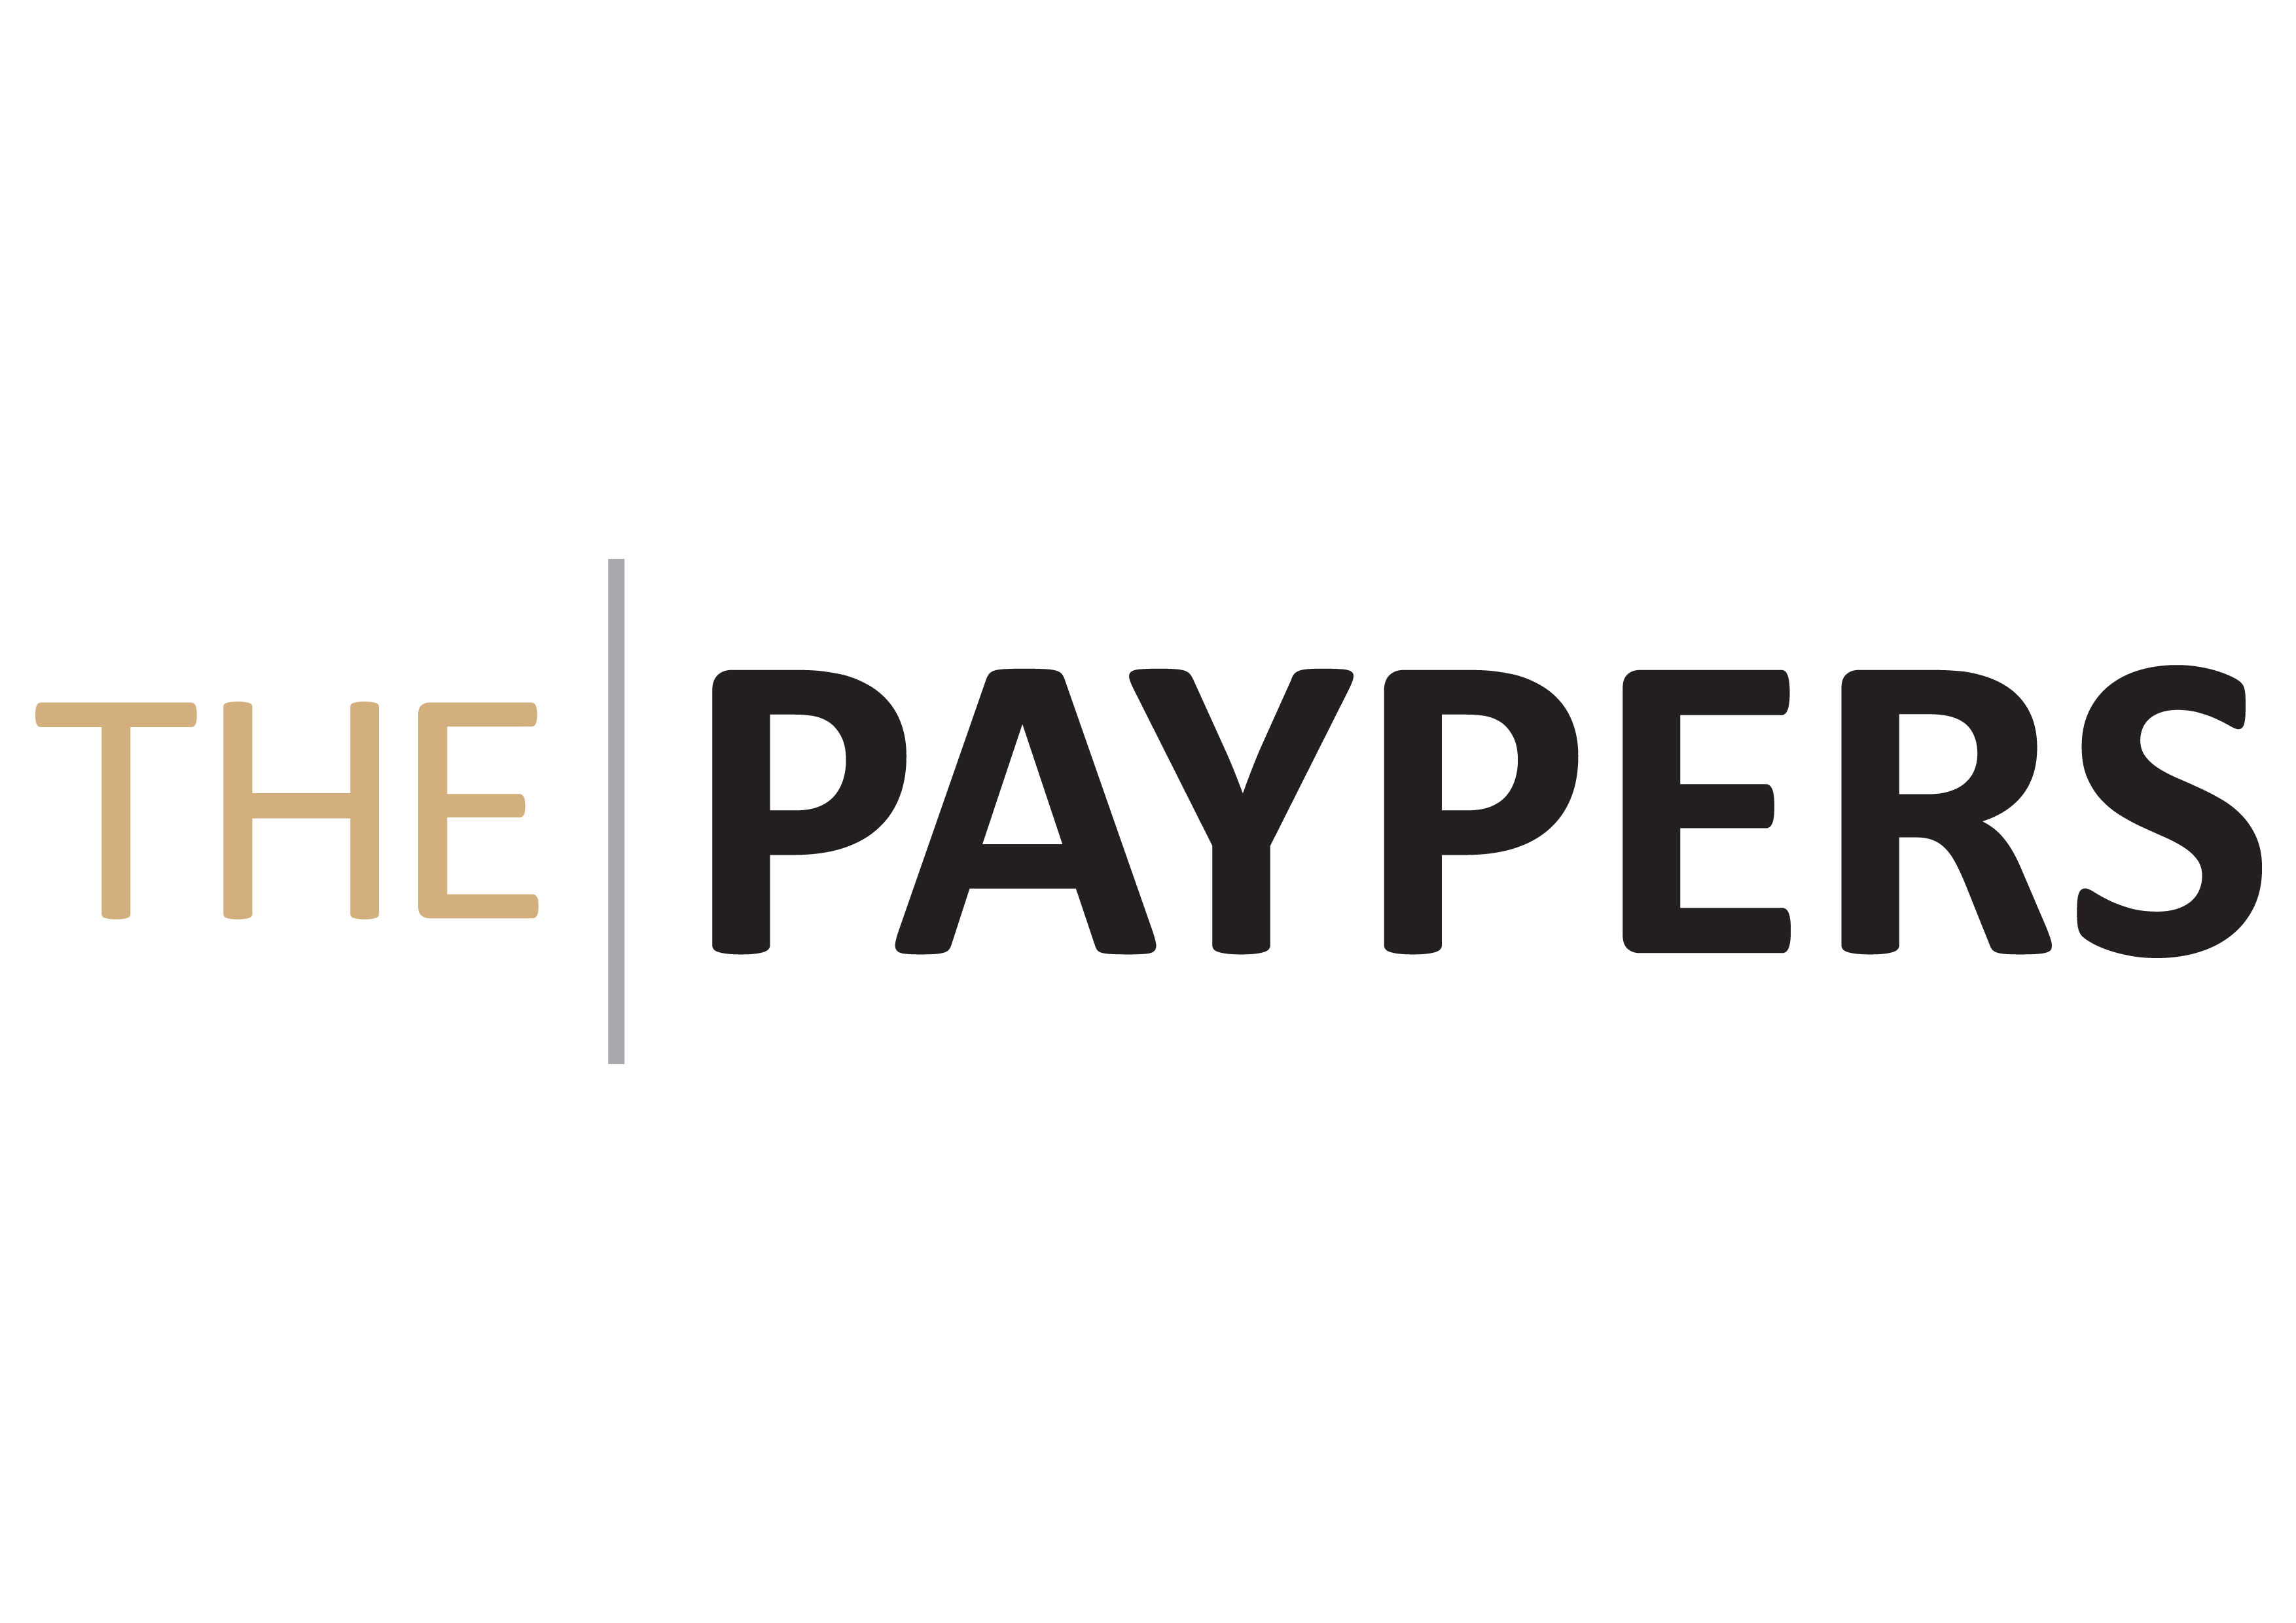 The Paypers banner